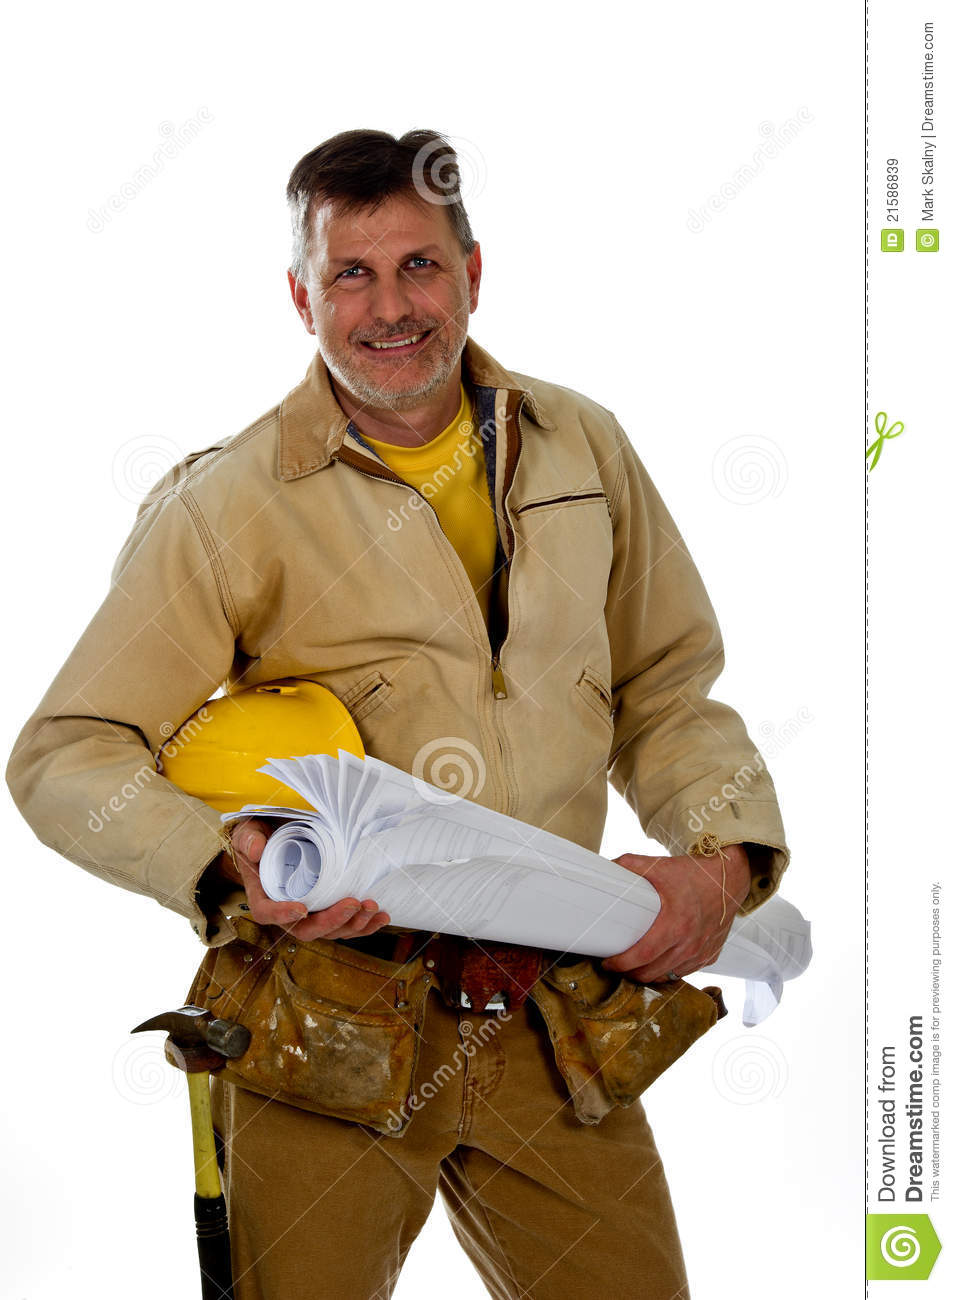 Stock Image Dreamstime Male Construction Worker Wearing A Tool Belt Royalty Free